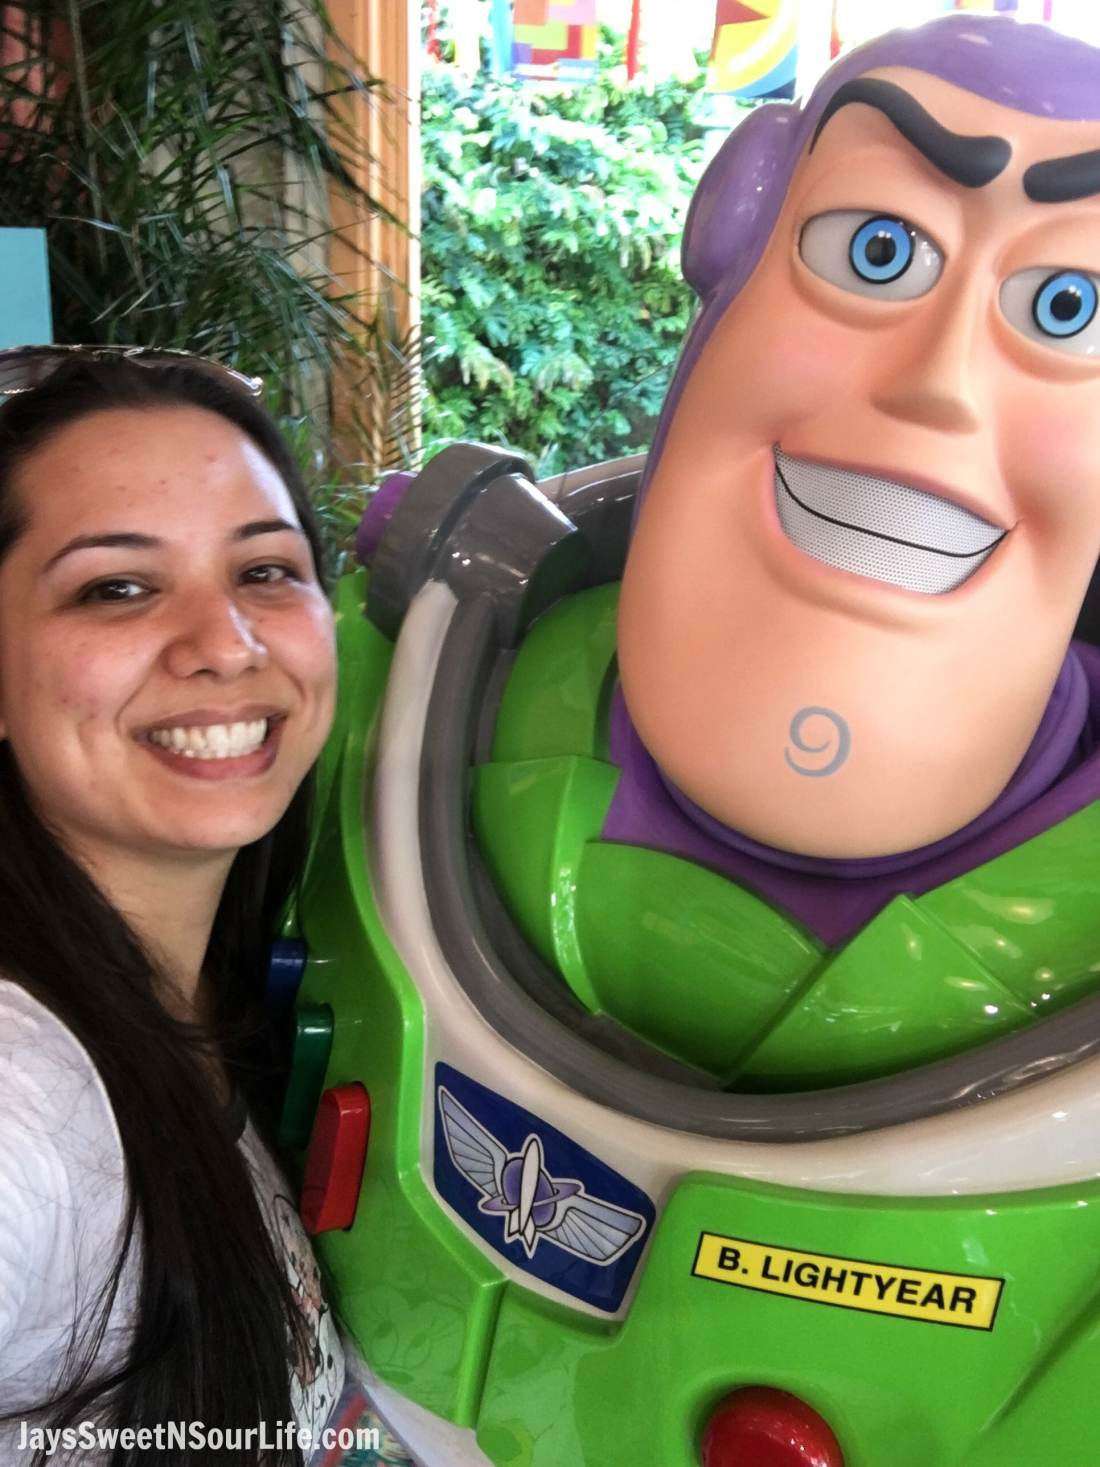 Pixar Fest Pixar Pals Buzz Lightyear Selfie. Pixar Fest at Disneyland runs from April 13 through September 3rd.